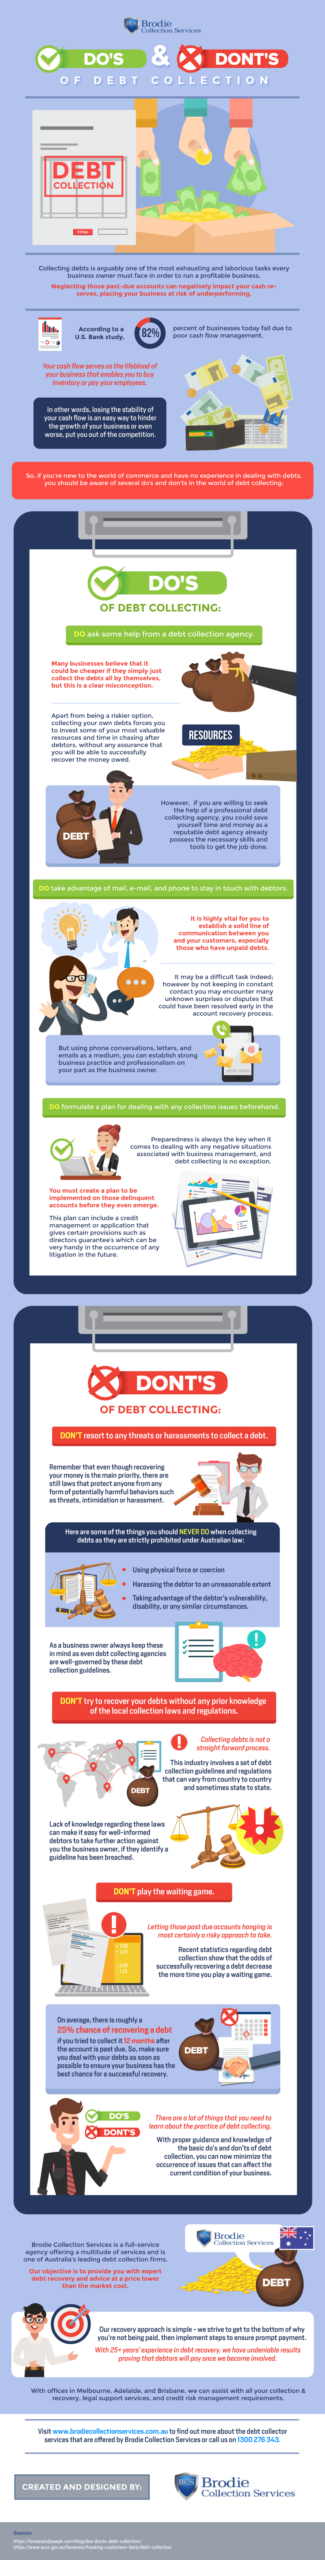 Do's and Don'ts of Debt Collection